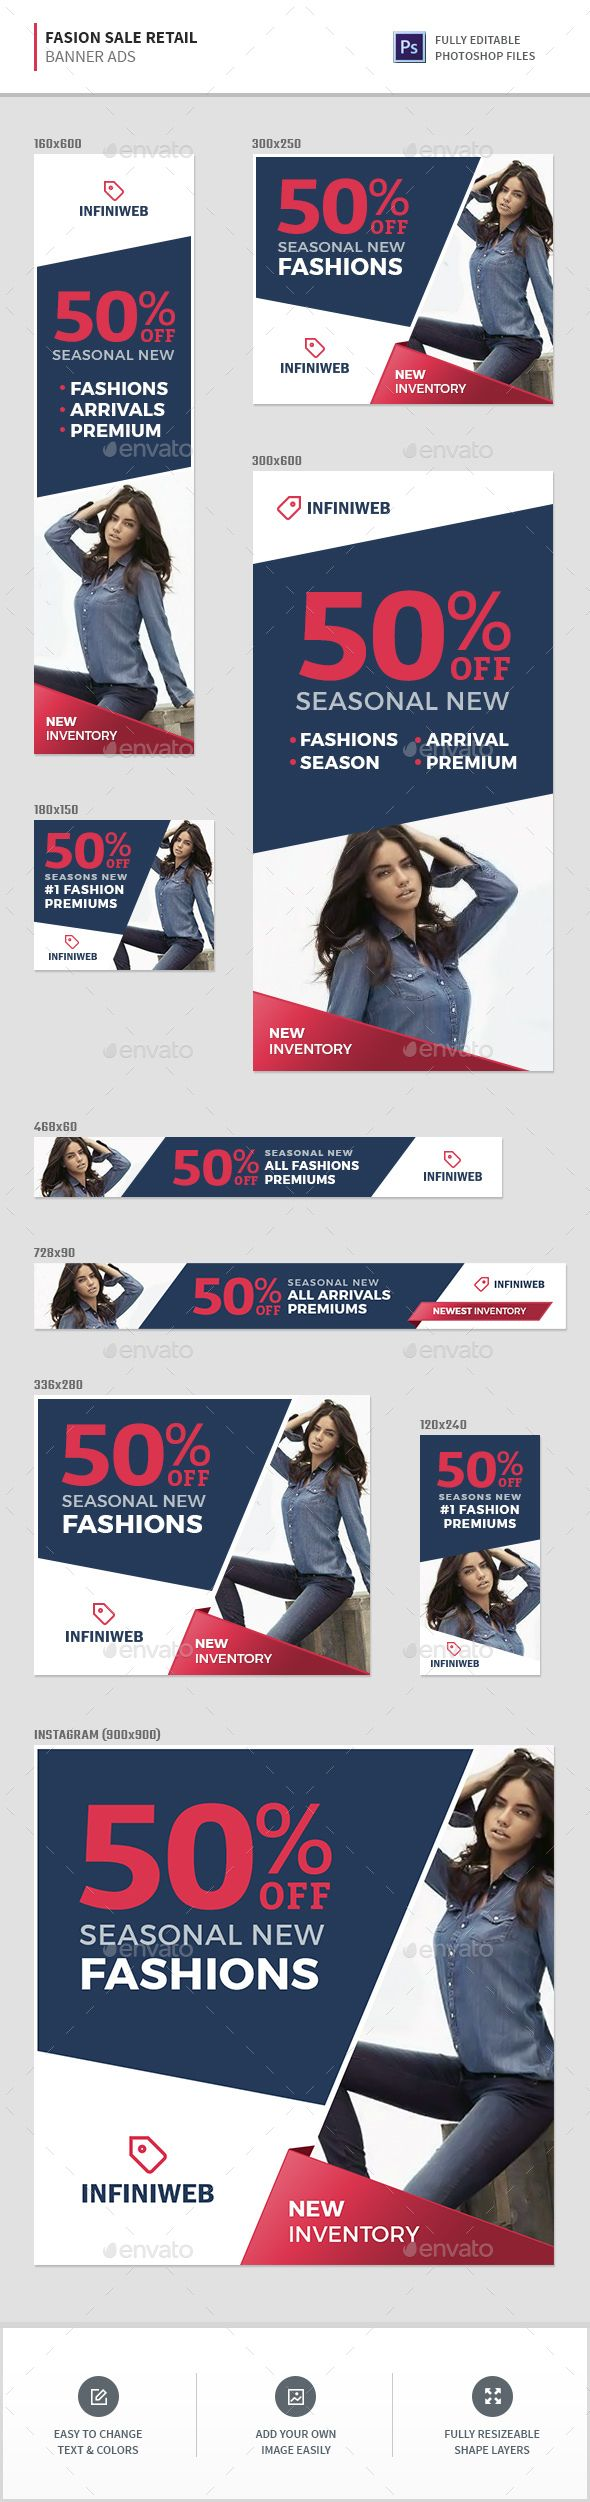 Fashion Sale Retail Banners - Banners & Ads Web Elements Download here : https://graphicriver.net/item/fashion-sale-retail-banners/19679097?s_rank=76&ref=Al-fatih